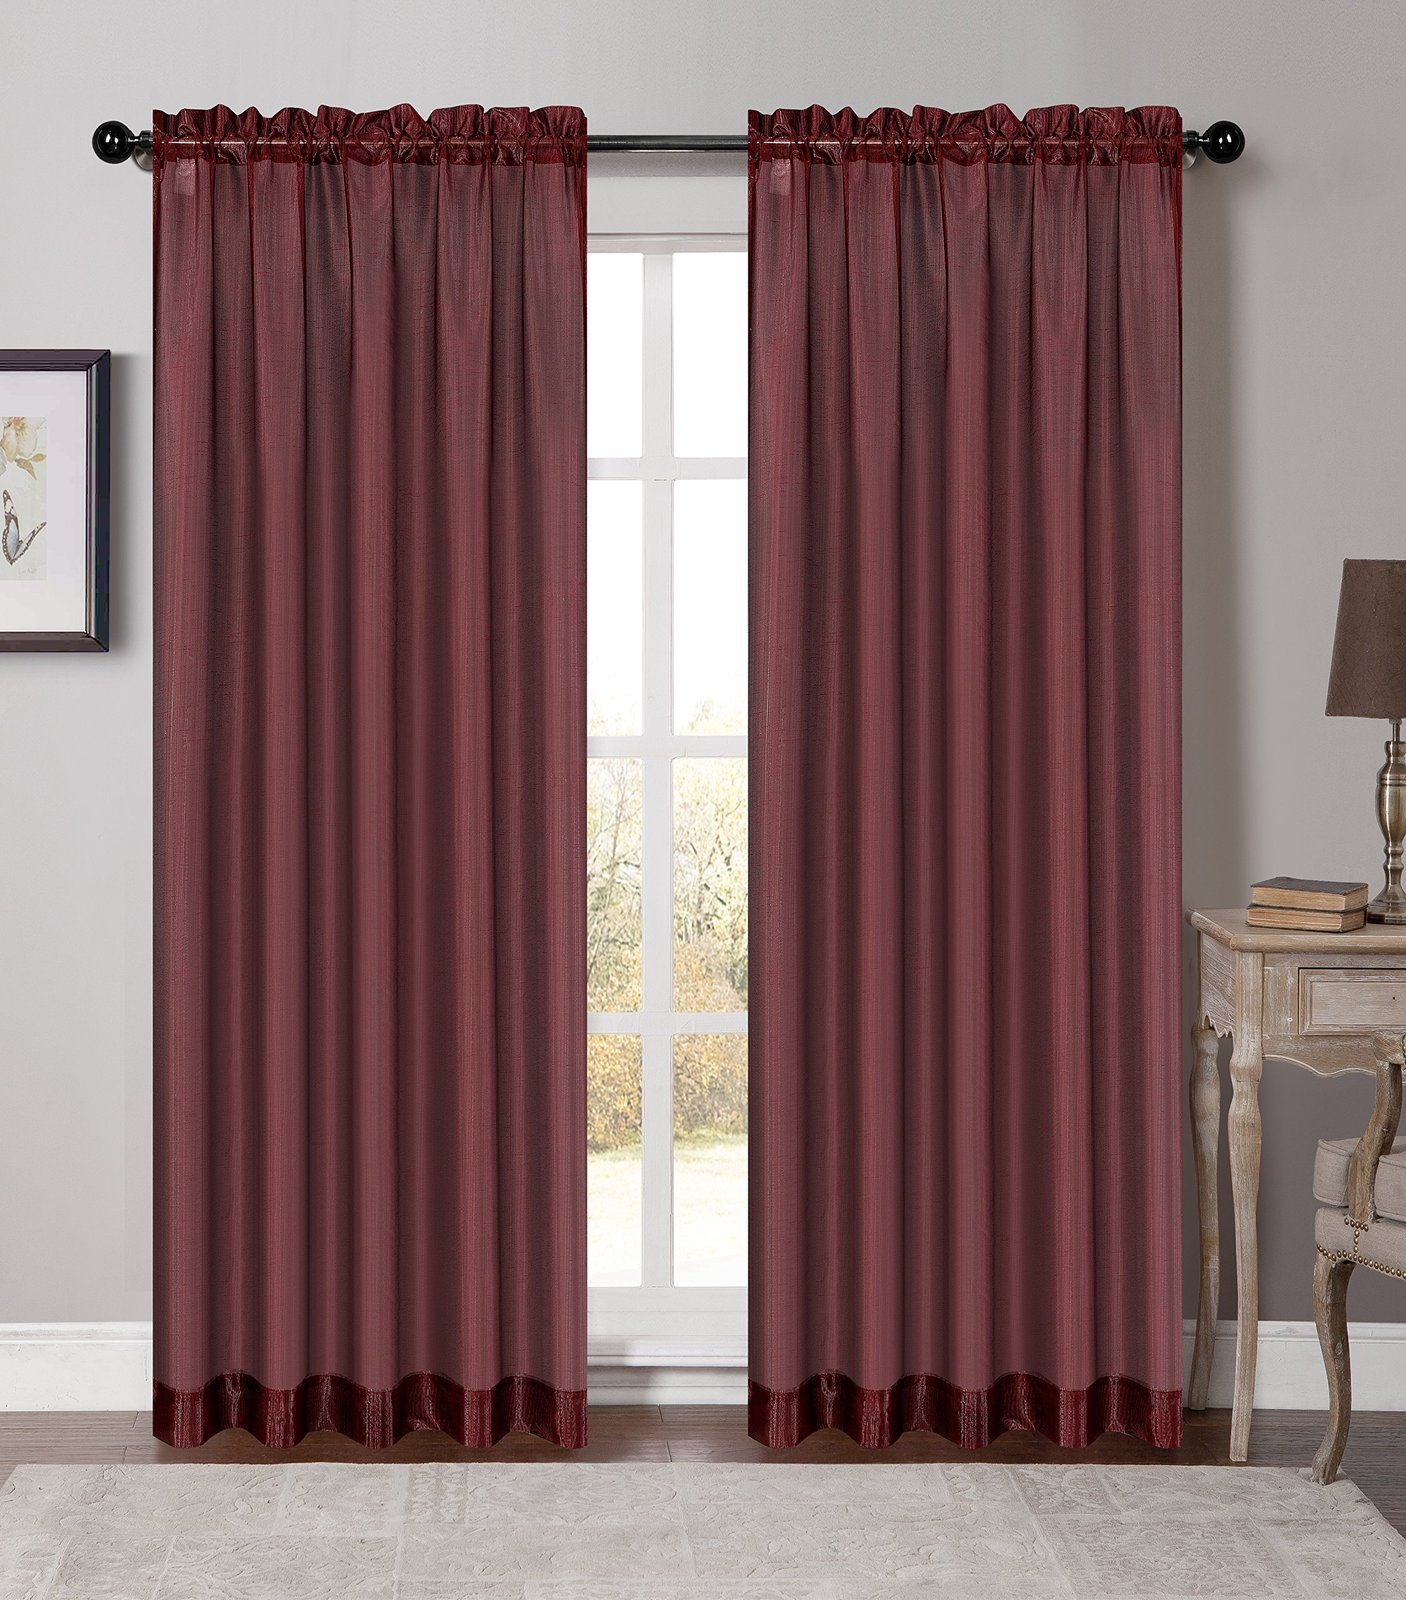 Urbanest 54-inch by 84-inch Set of 2 Soho Sheer Drapery Curtain Panel, Bordeaux